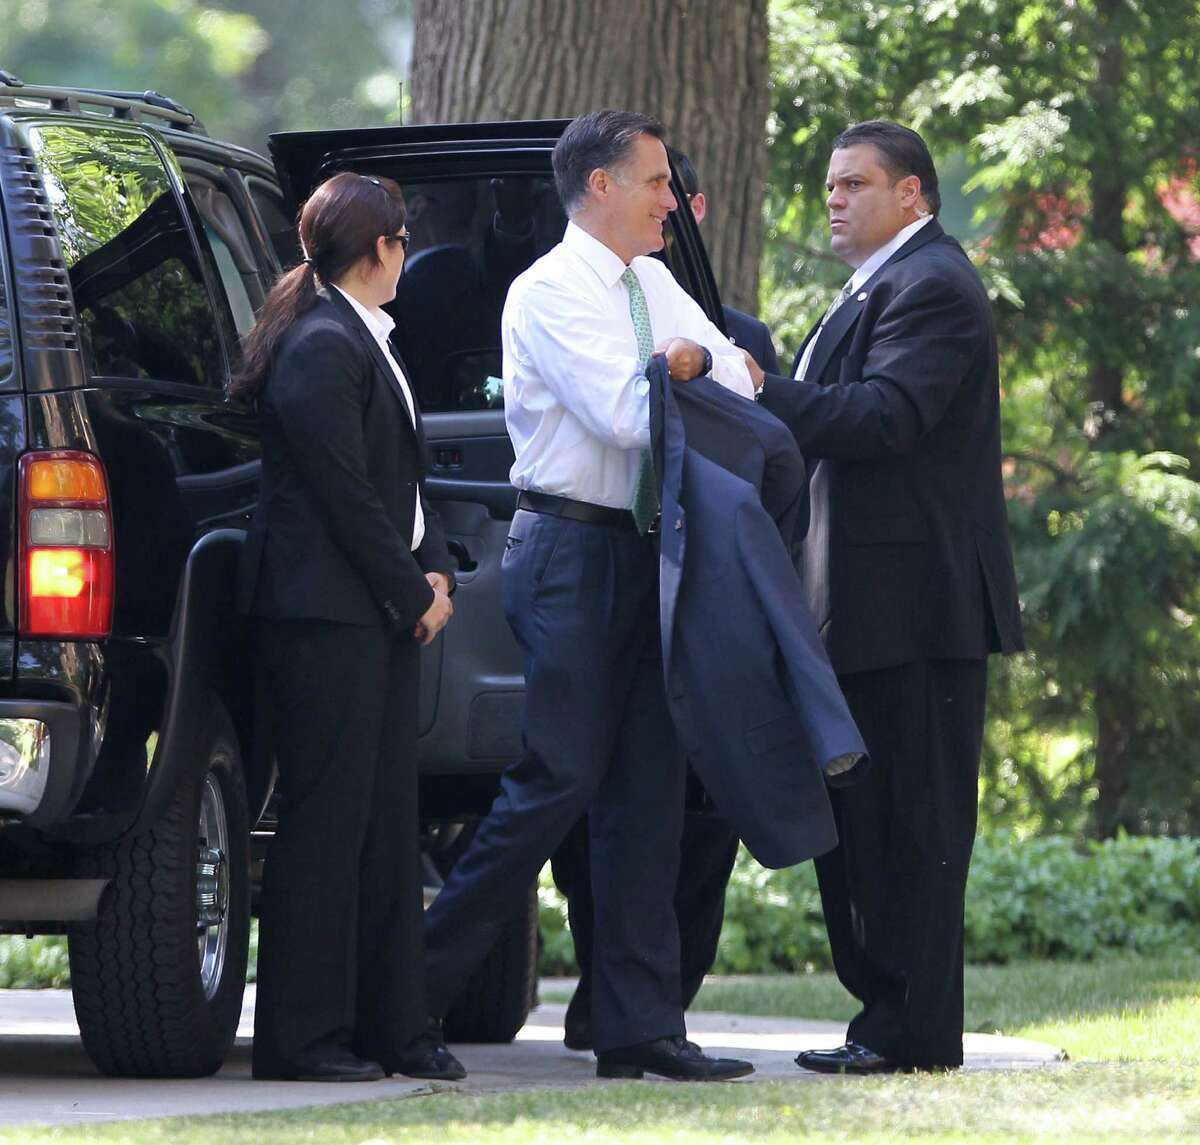 Republican presidential candidate, former Massachusetts Gov. Mitt Romney arrives for a private fundraiser in Buffalo N.Y., on Friday, June 29, 2012. (AP Photo/James P. McCoy)